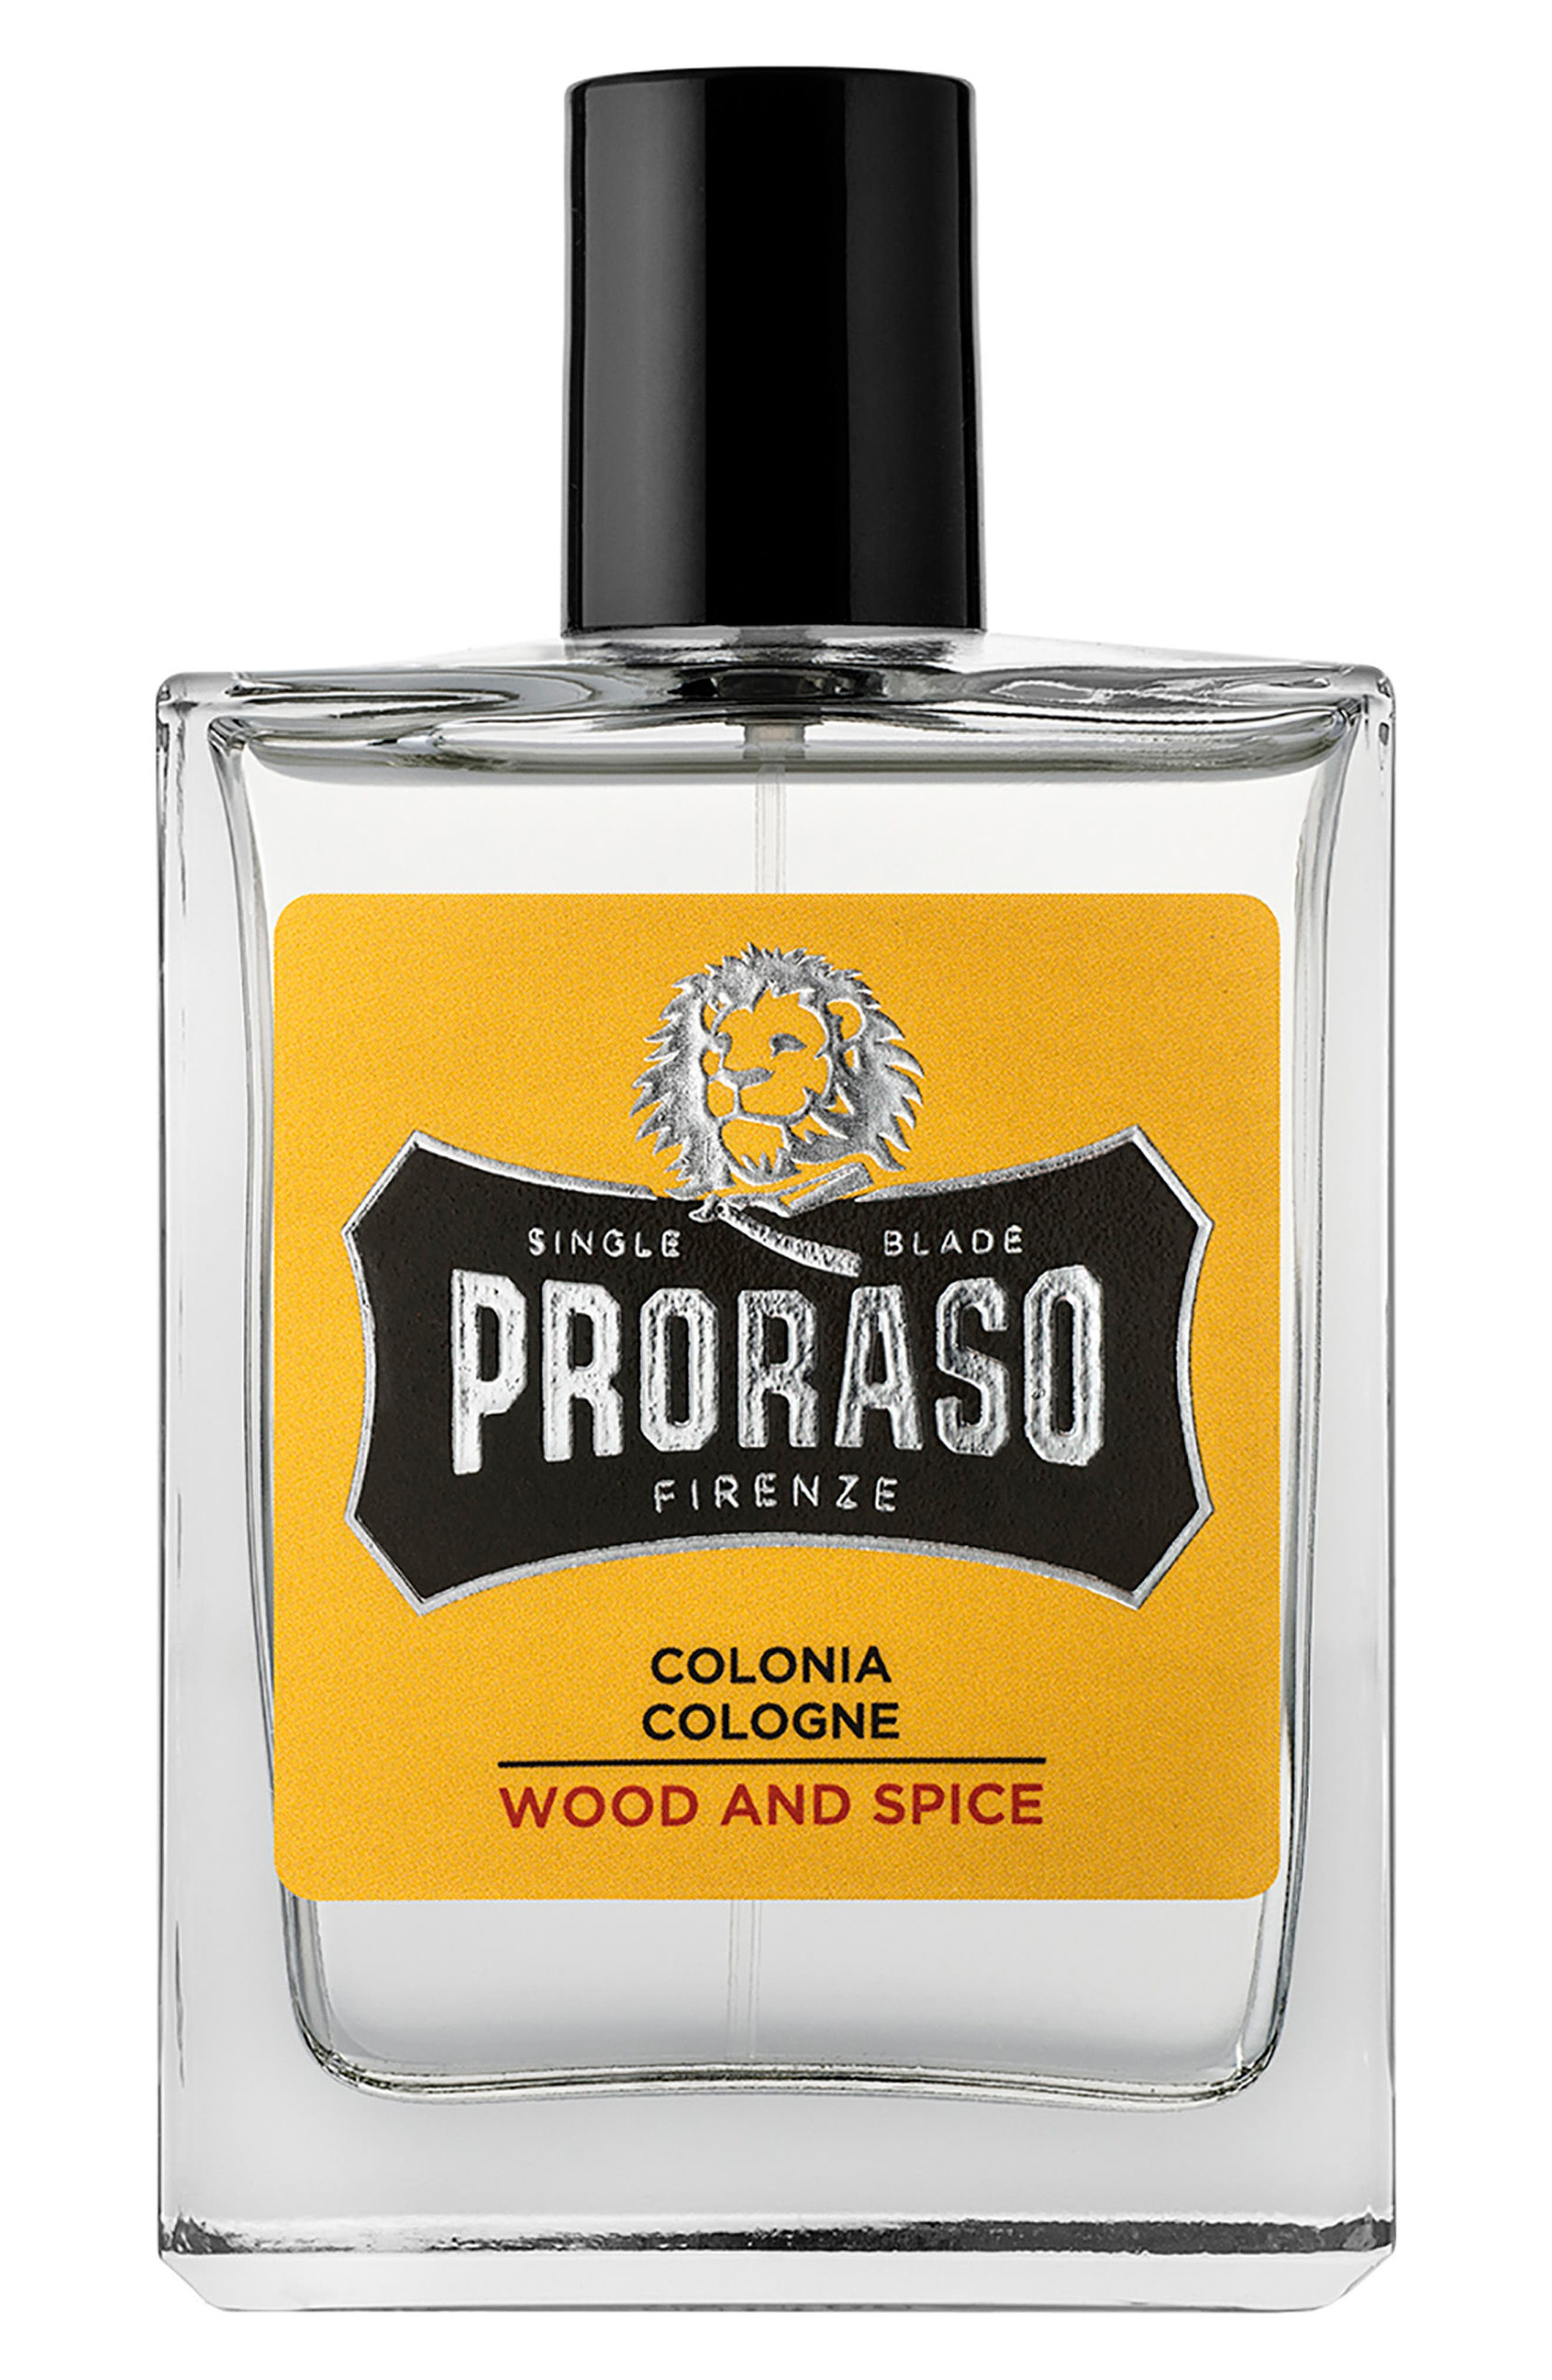 PRORASO Men's Grooming Wood and Spice Cologne, Main, color, NO COLOR